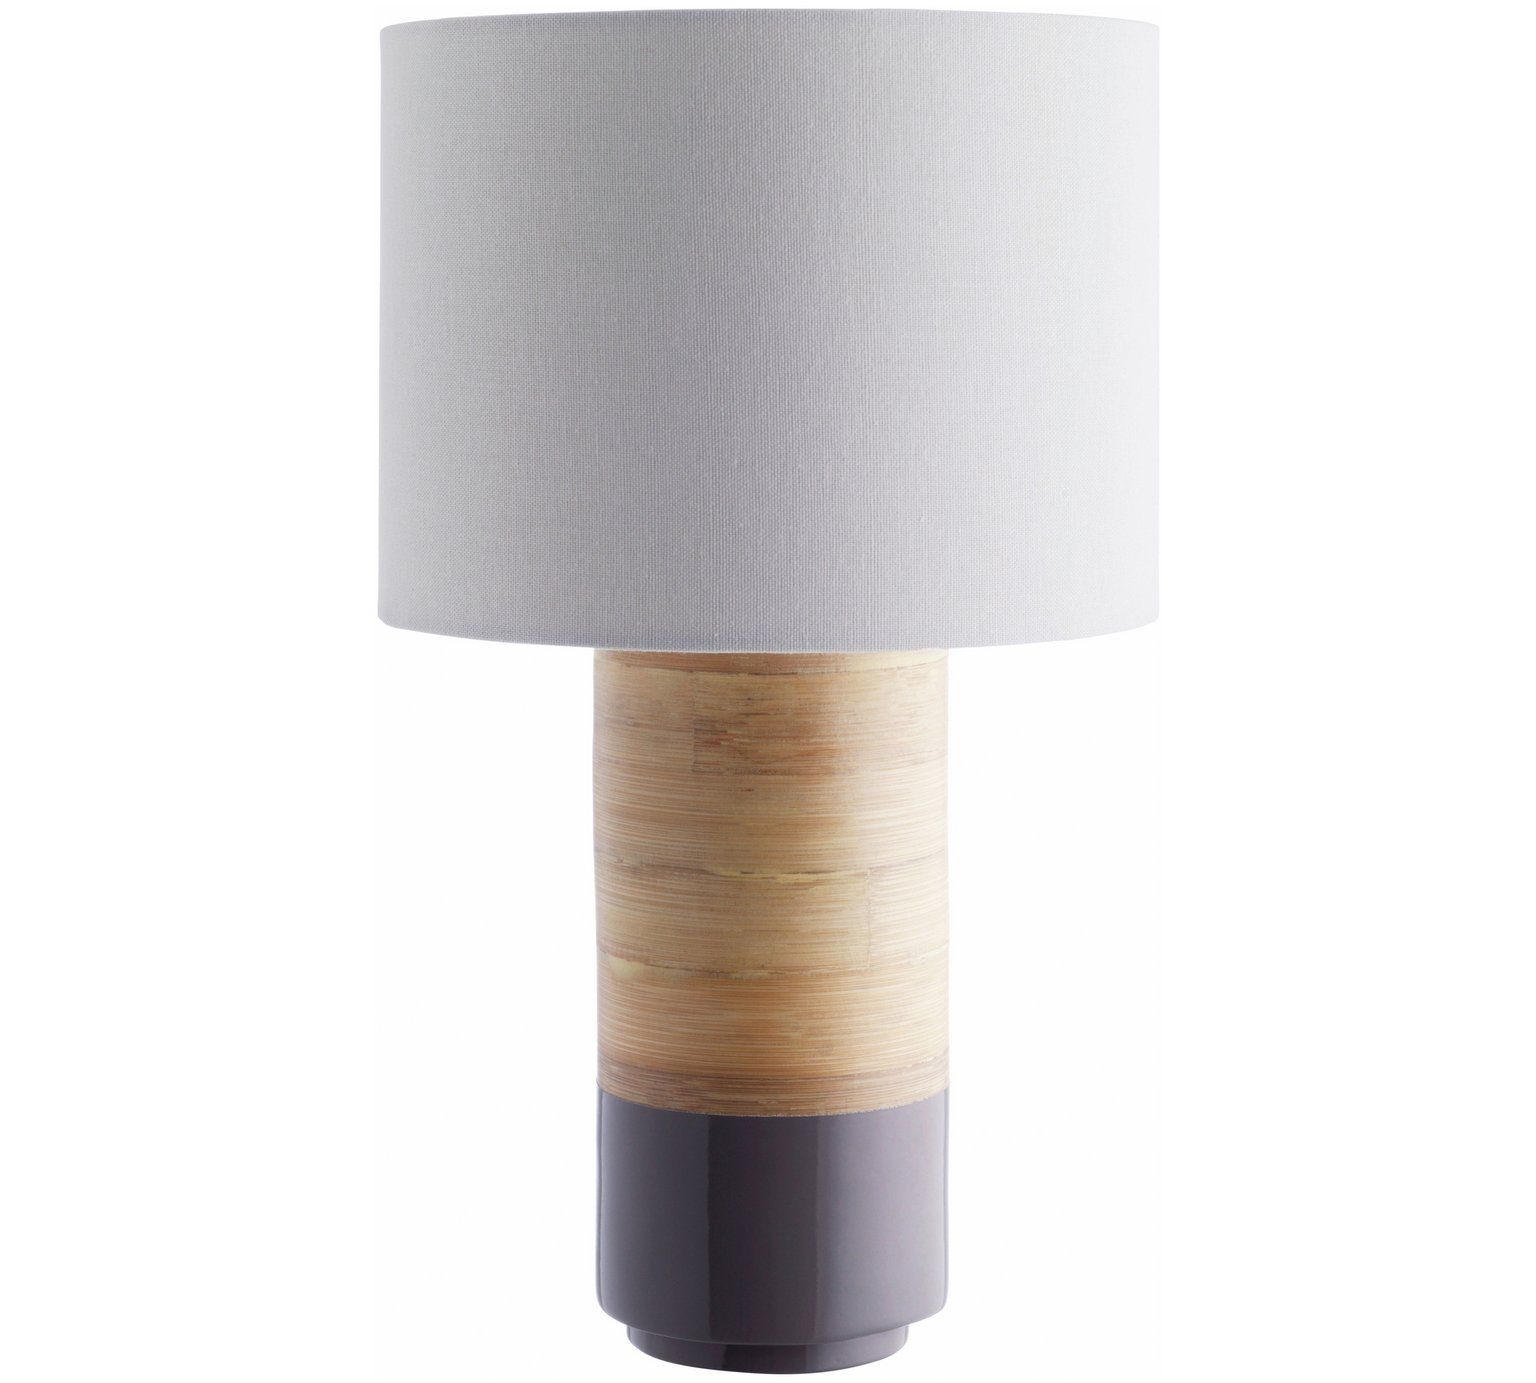 Buy habitat tub spun bamboo table lamp grey at argos buy habitat tub spun bamboo table lamp grey at argos geotapseo Image collections